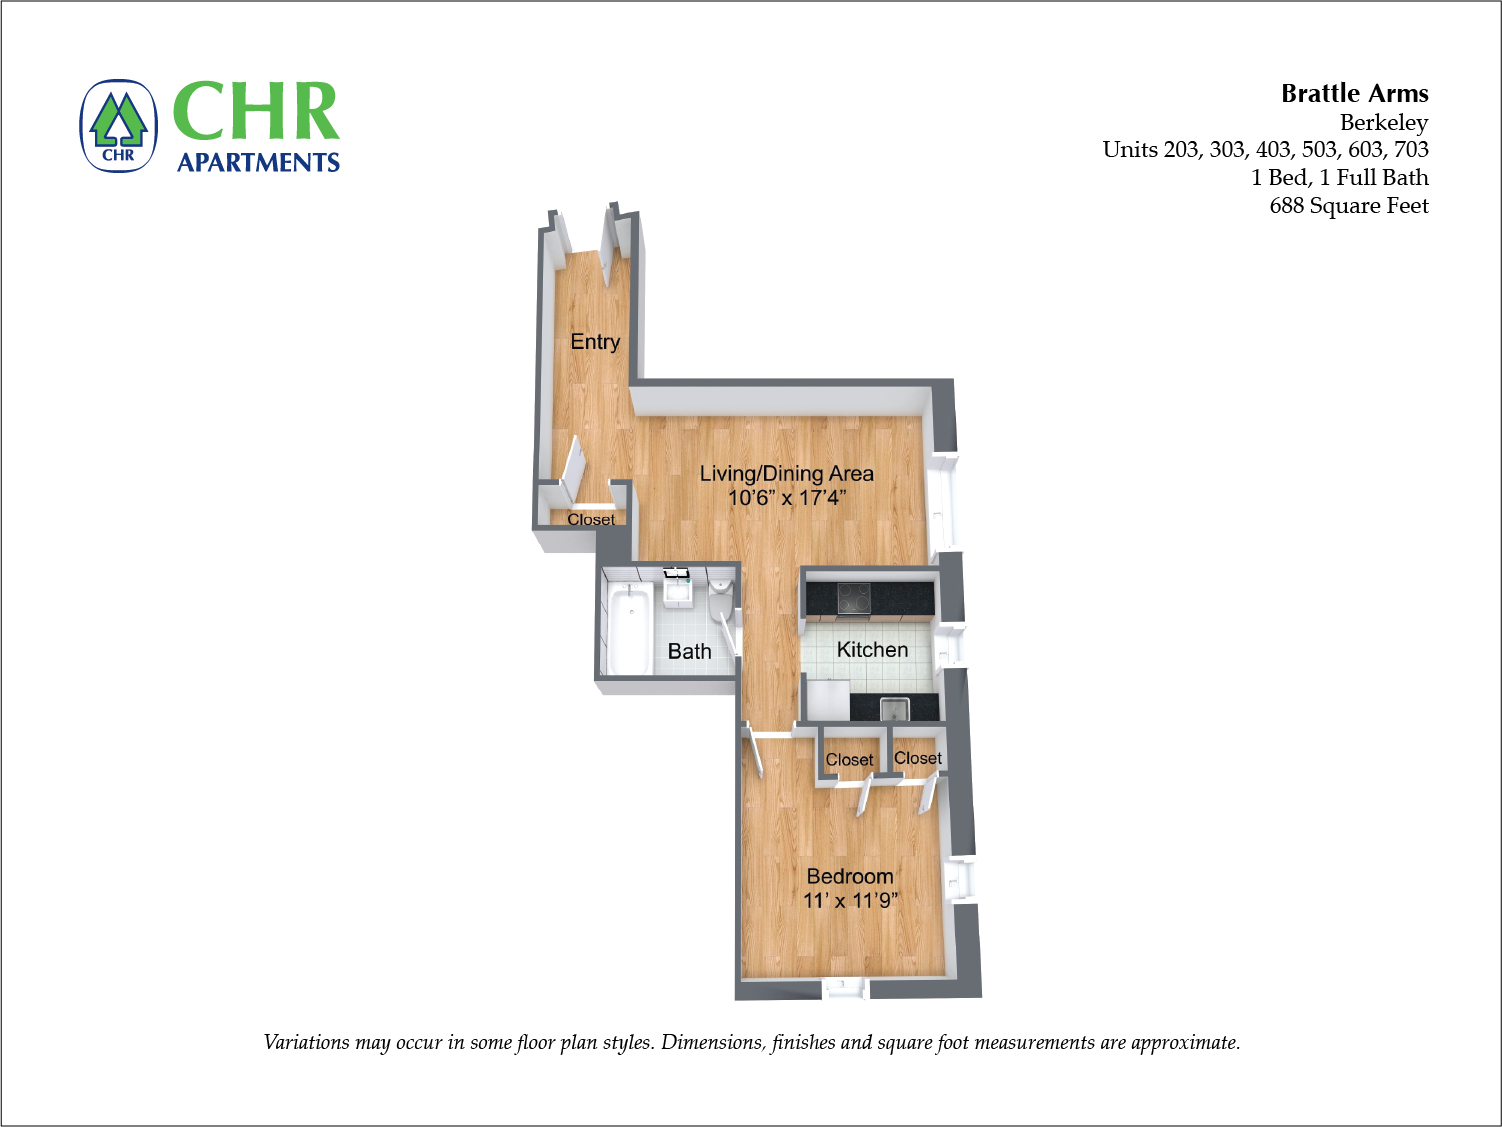 Click to view Floor plan Brattle Arms - 1 Bedroom image 2